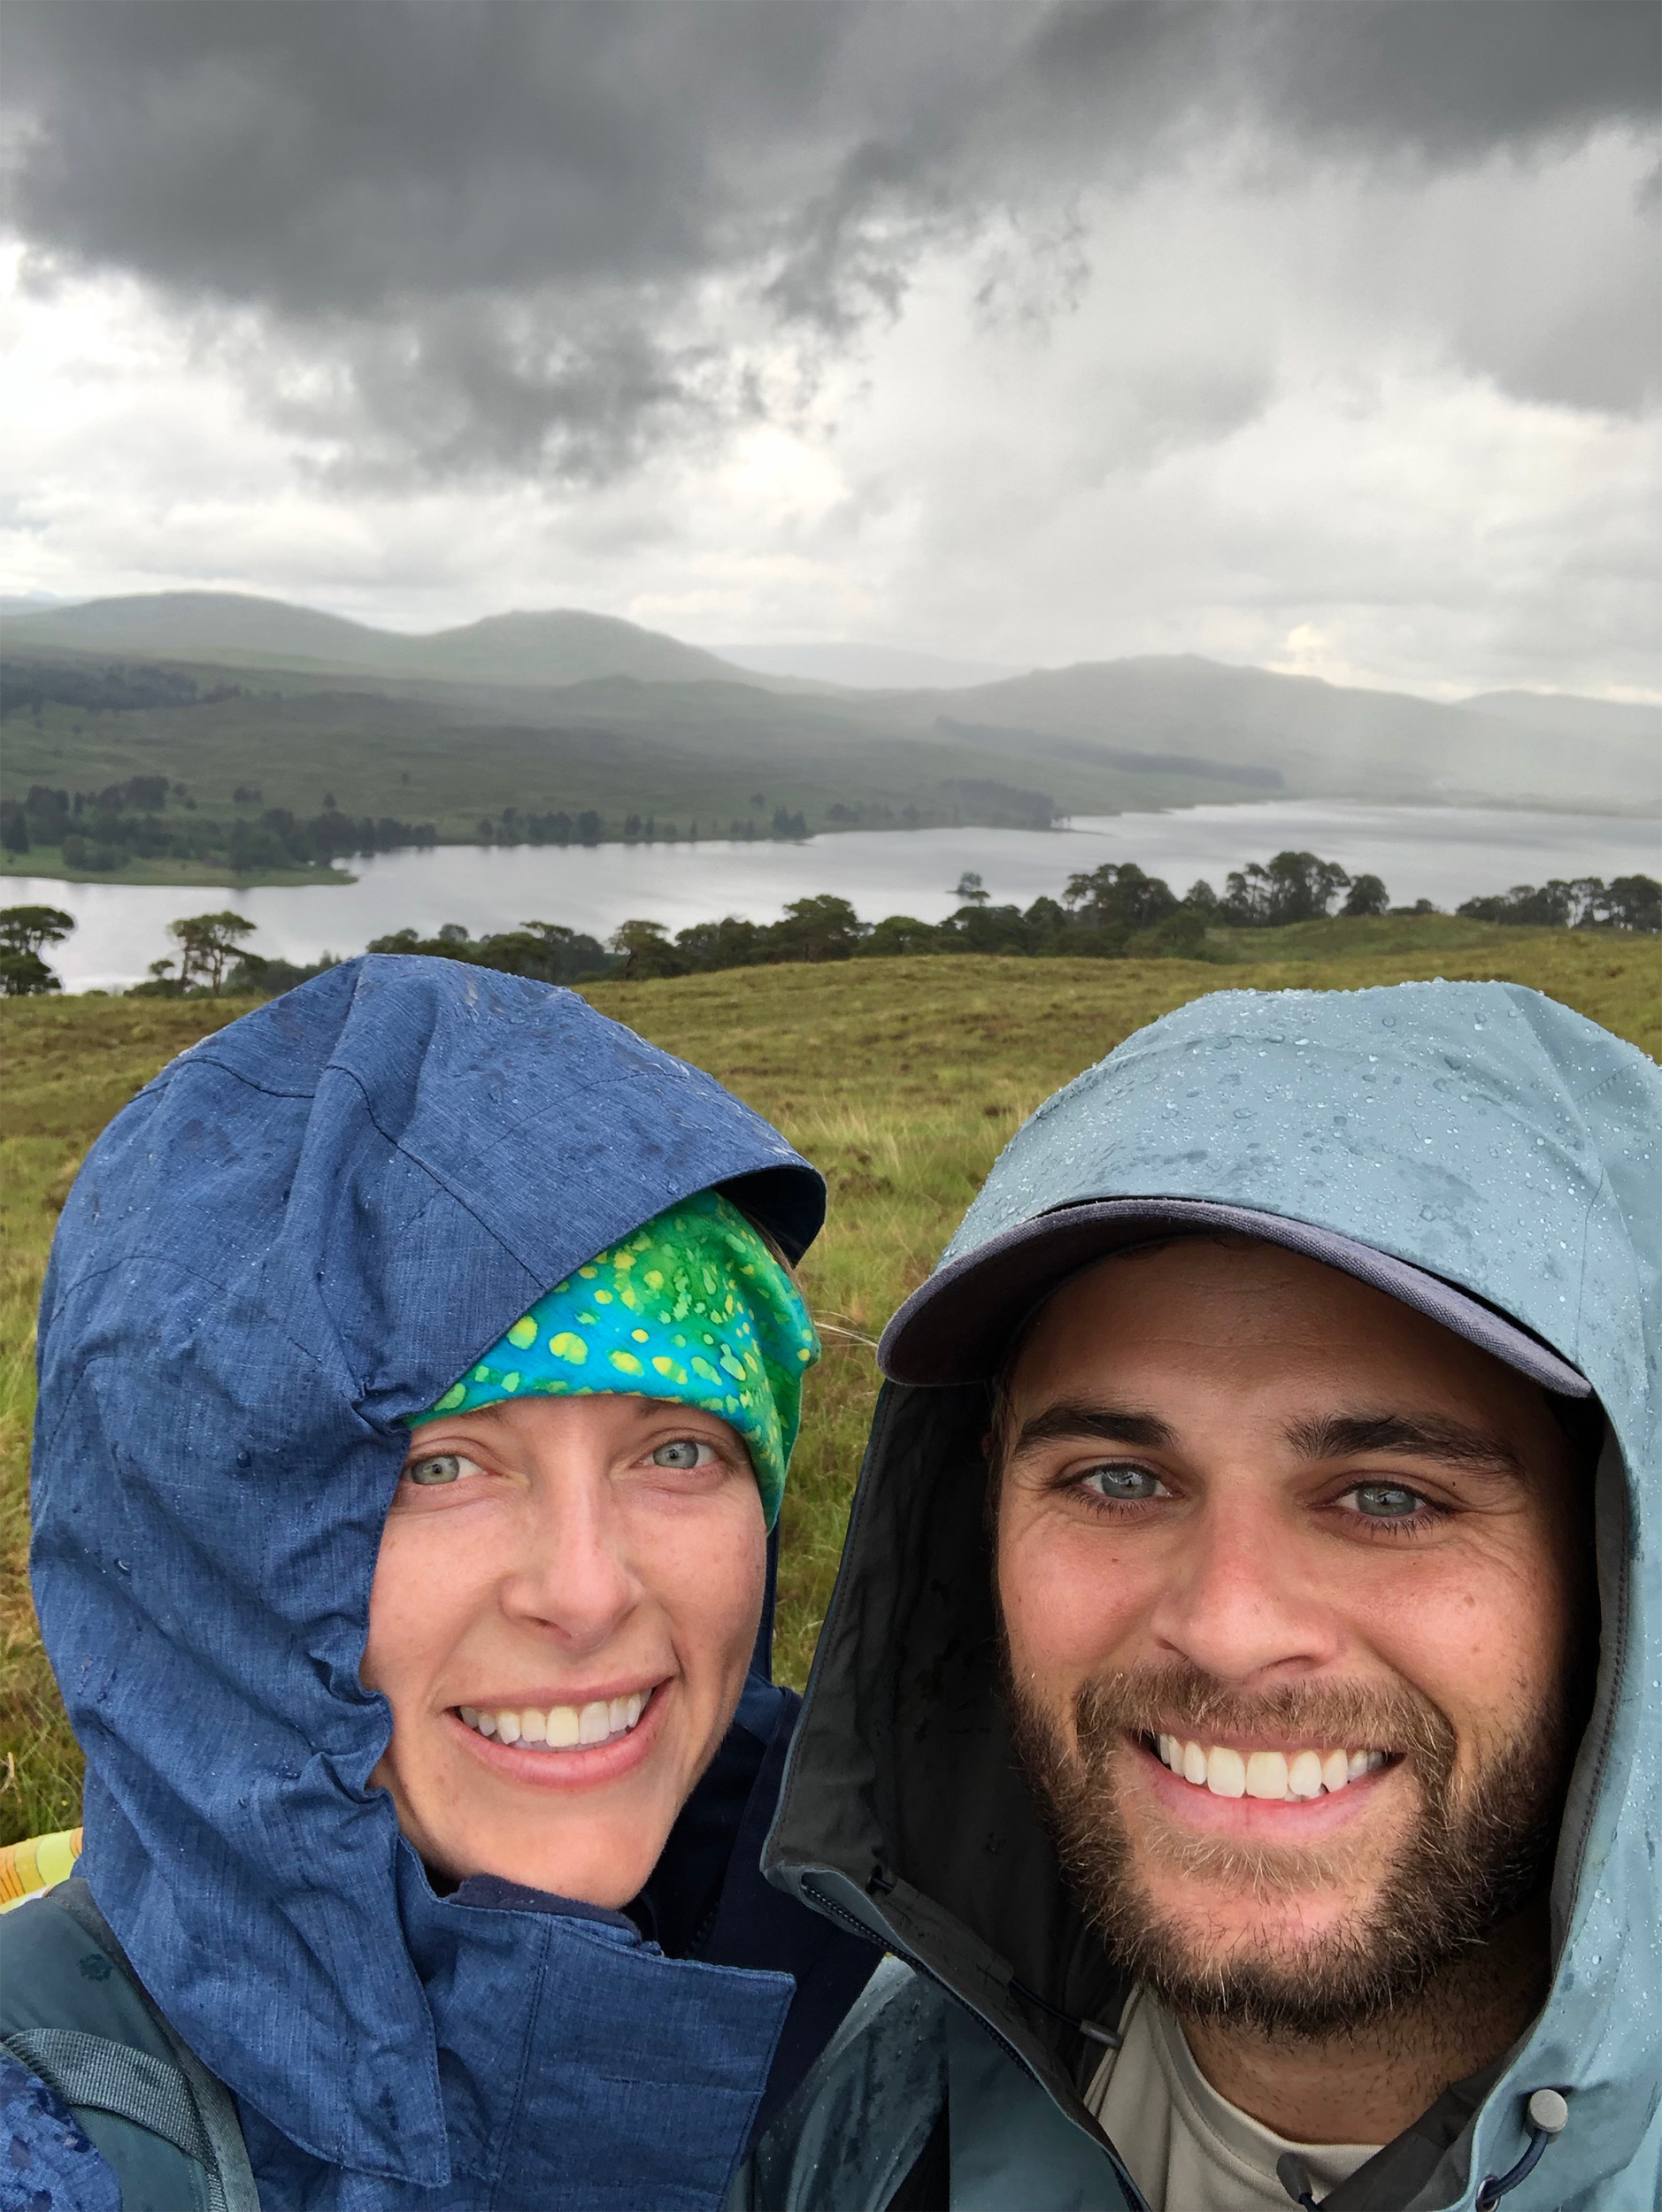 We had our 2 year anniversary on this day. It was one of the most challenging and secluded sections of the Journey. We went through Rannoch Moor which is the wildest and most uninhabited section of the West Highland Way.